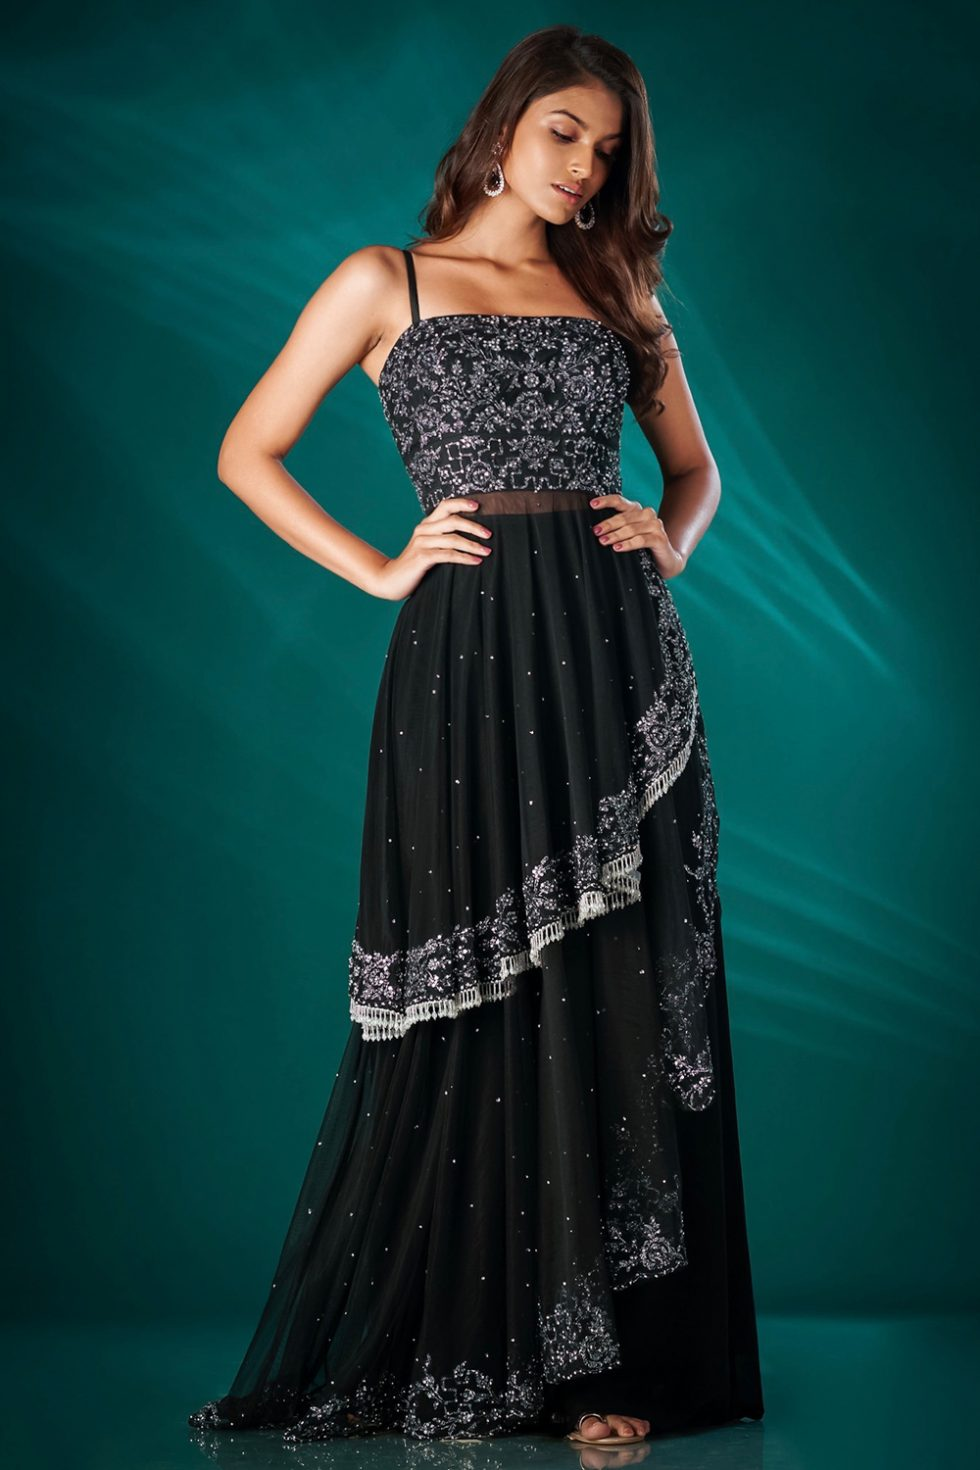 Raven black palazzo pant set with a layered top with silver and black embroidery, embellishments and tassels.